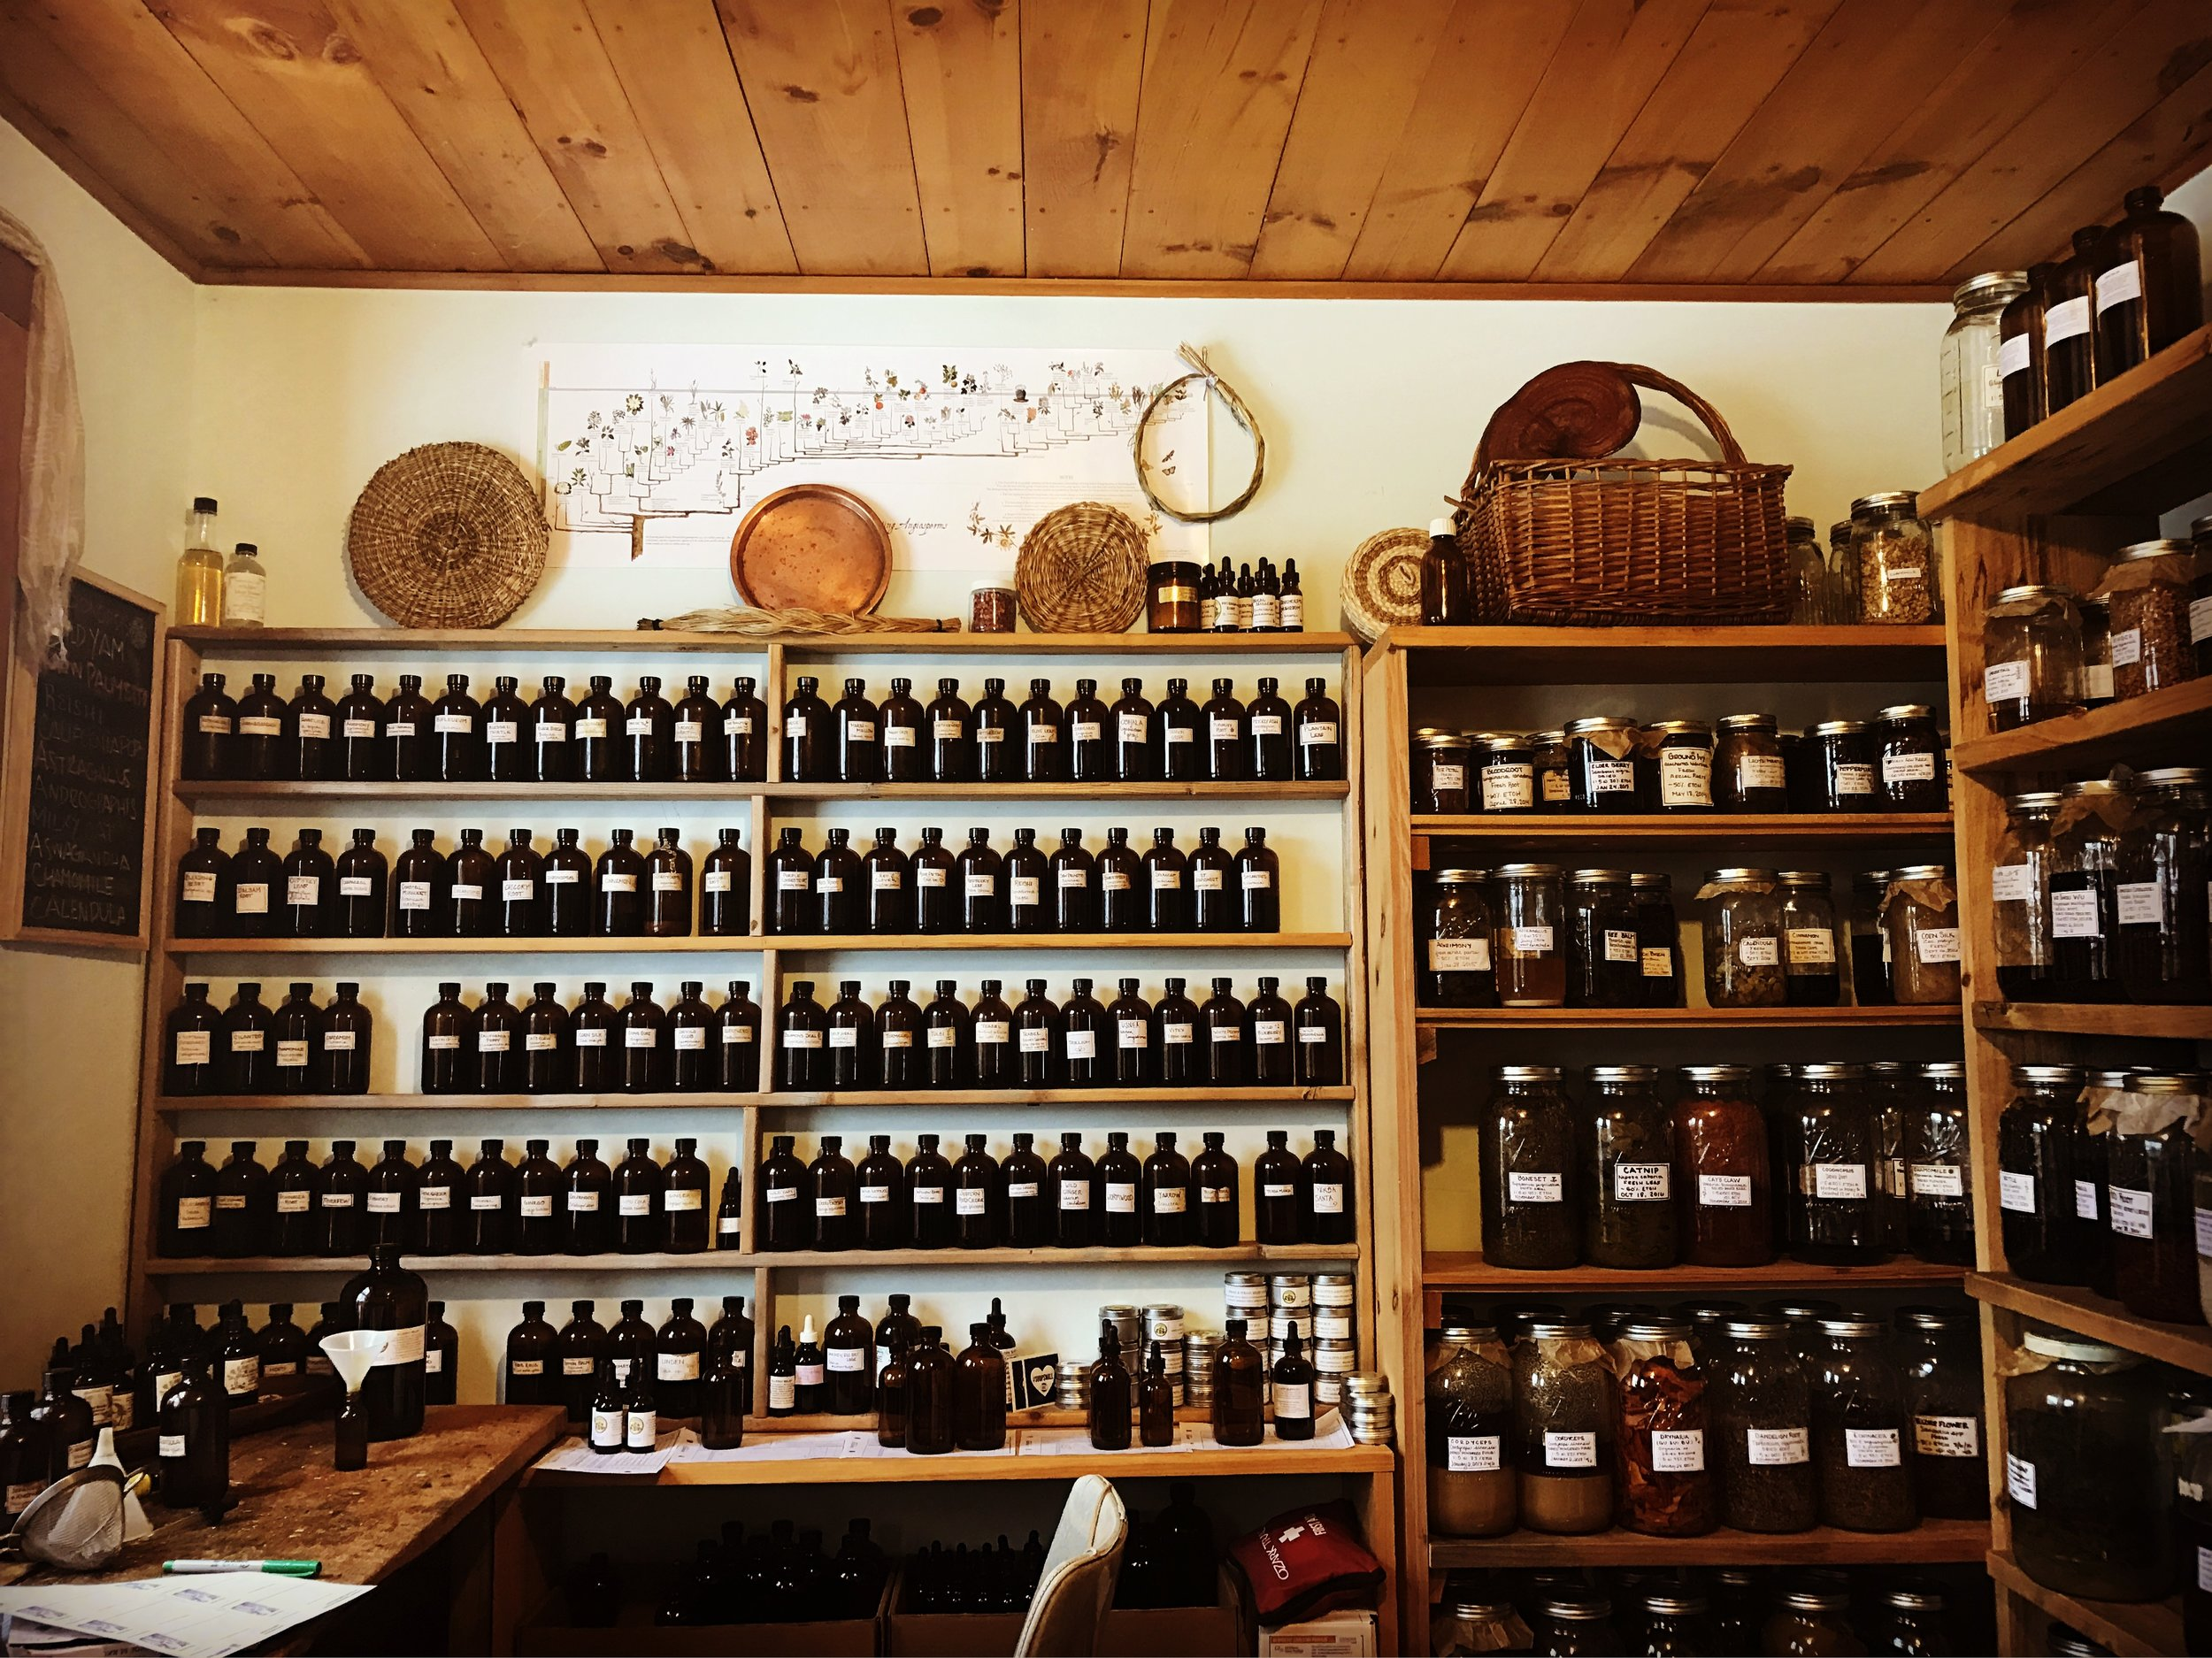 Your apothecary is a place to truly welcome the plants into your home. Together we'll fill it with glass bottles, jars, handcrafted labels, rows of herbs hanging to dry; everything you need to create a beautiful and functional home apothecary.